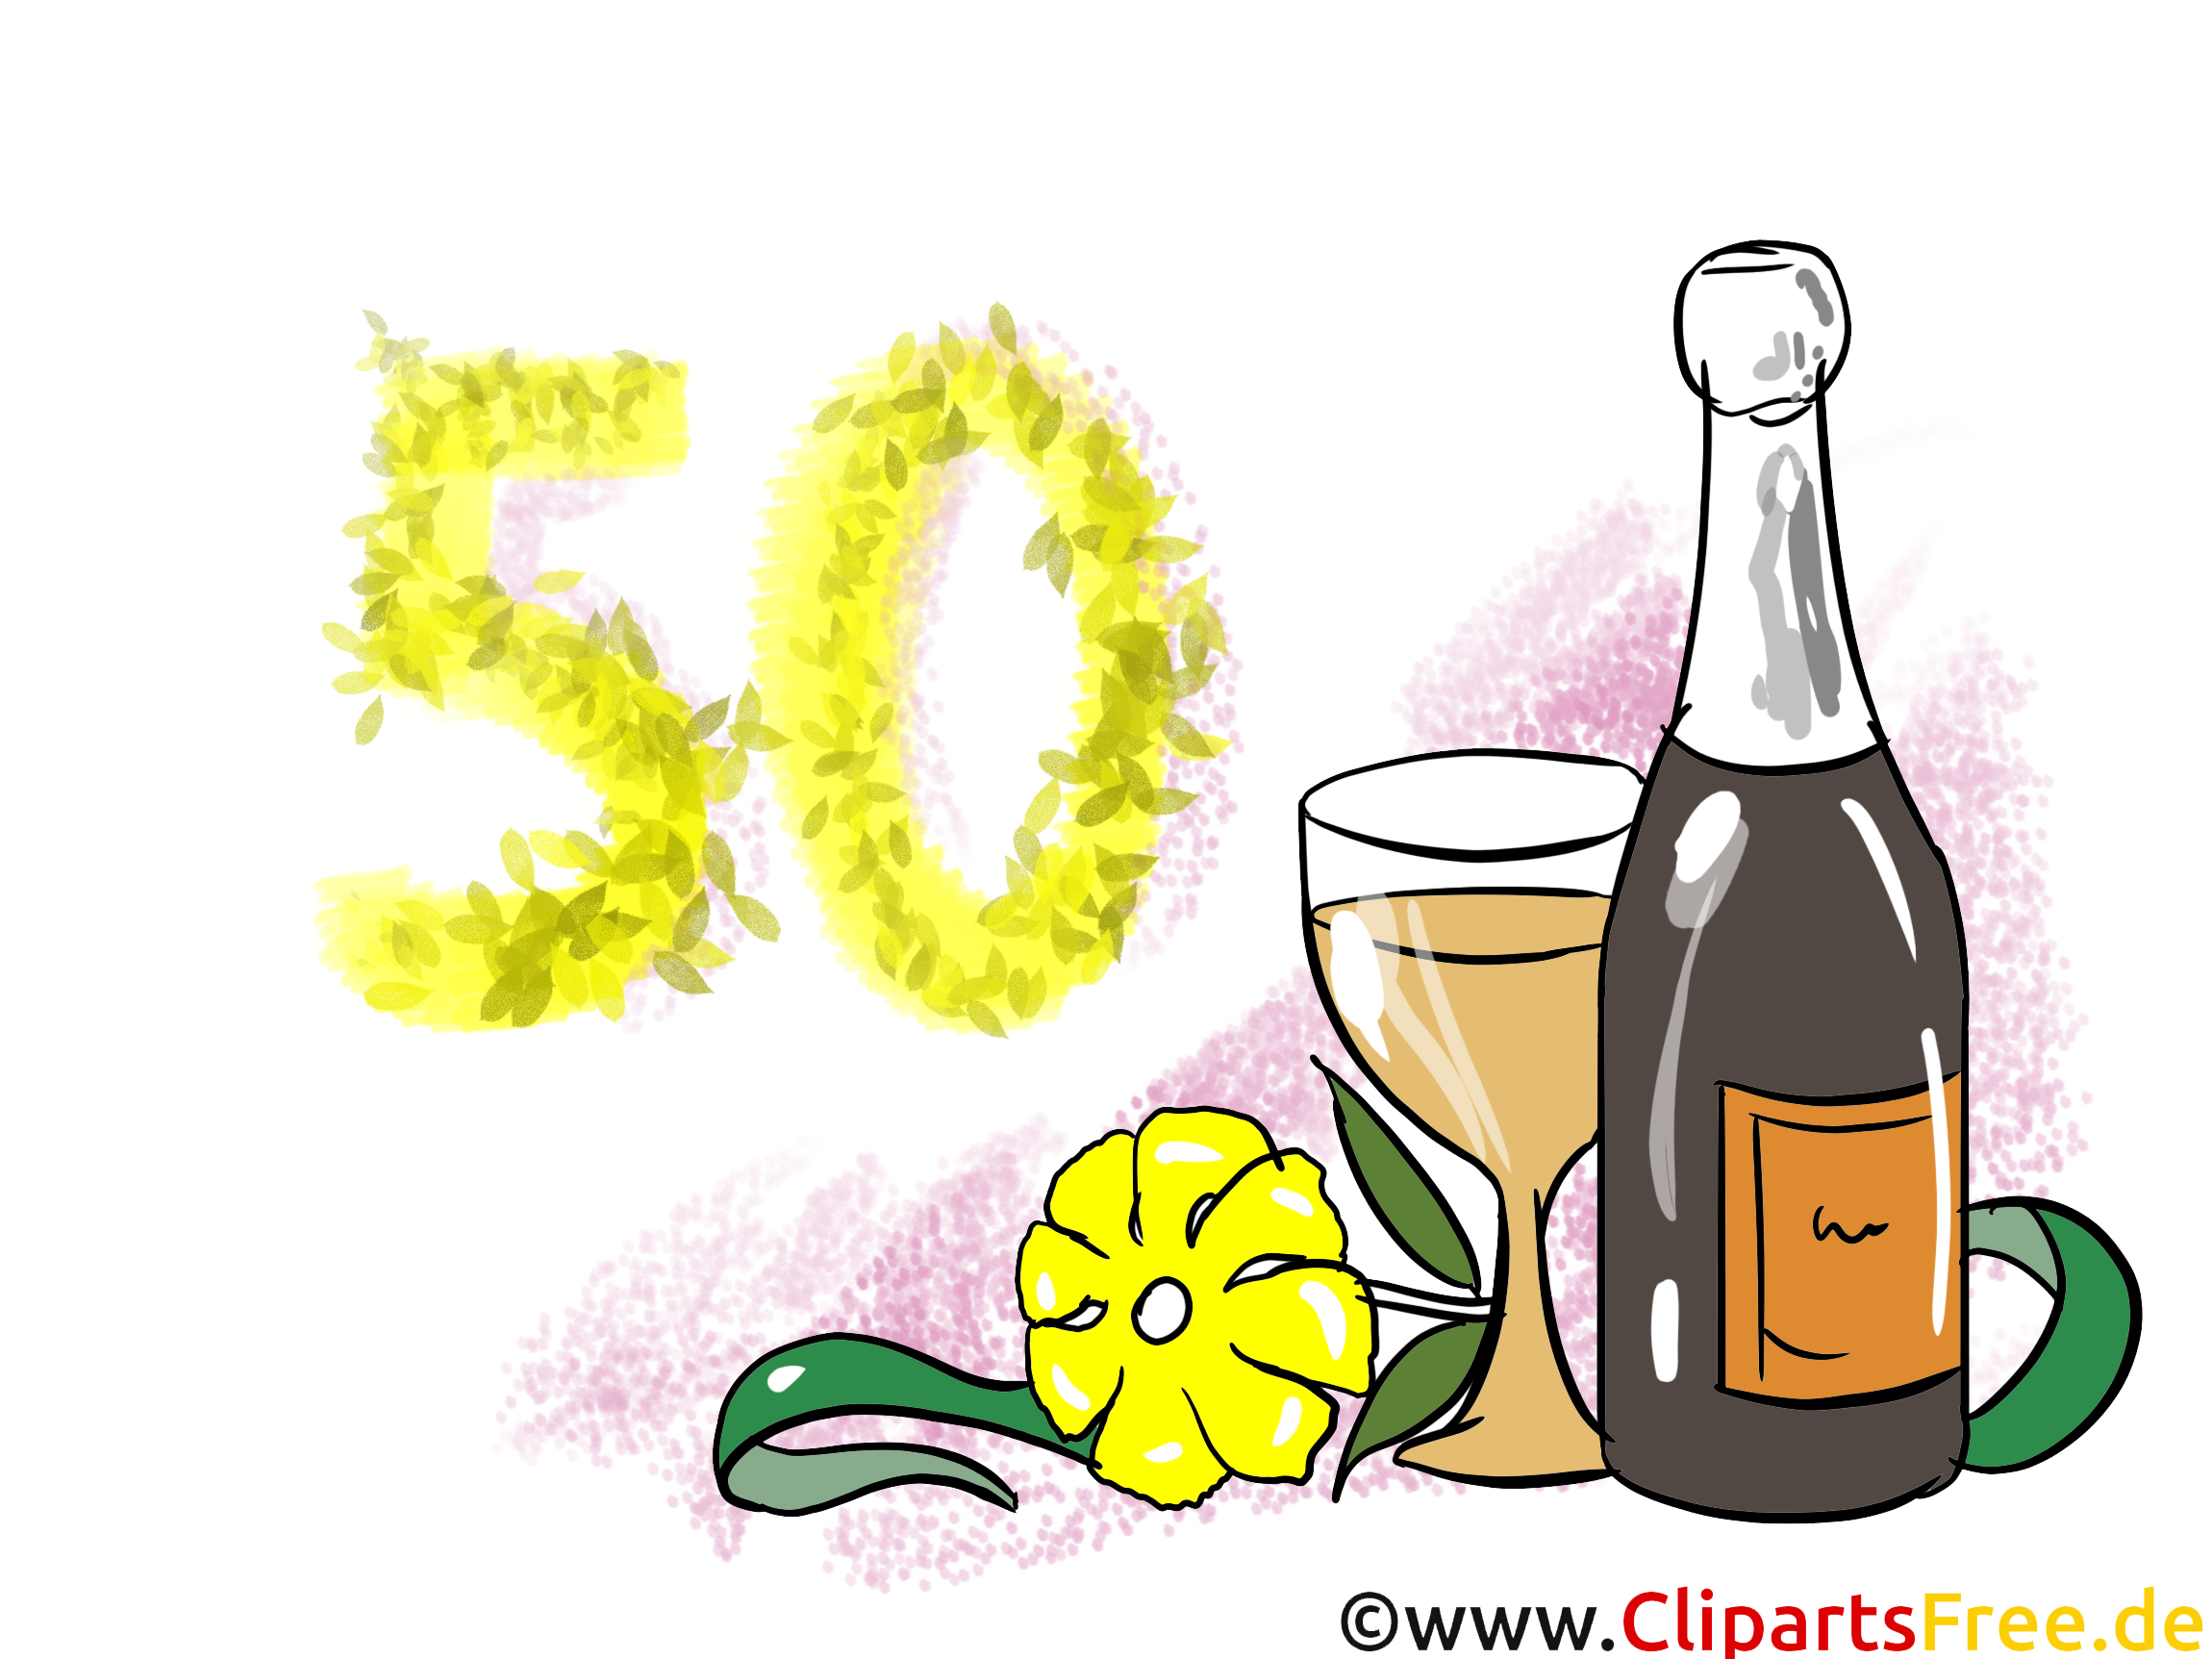 champagne 50 ans dessin anniversaire images anniversaire dessin picture image graphic. Black Bedroom Furniture Sets. Home Design Ideas